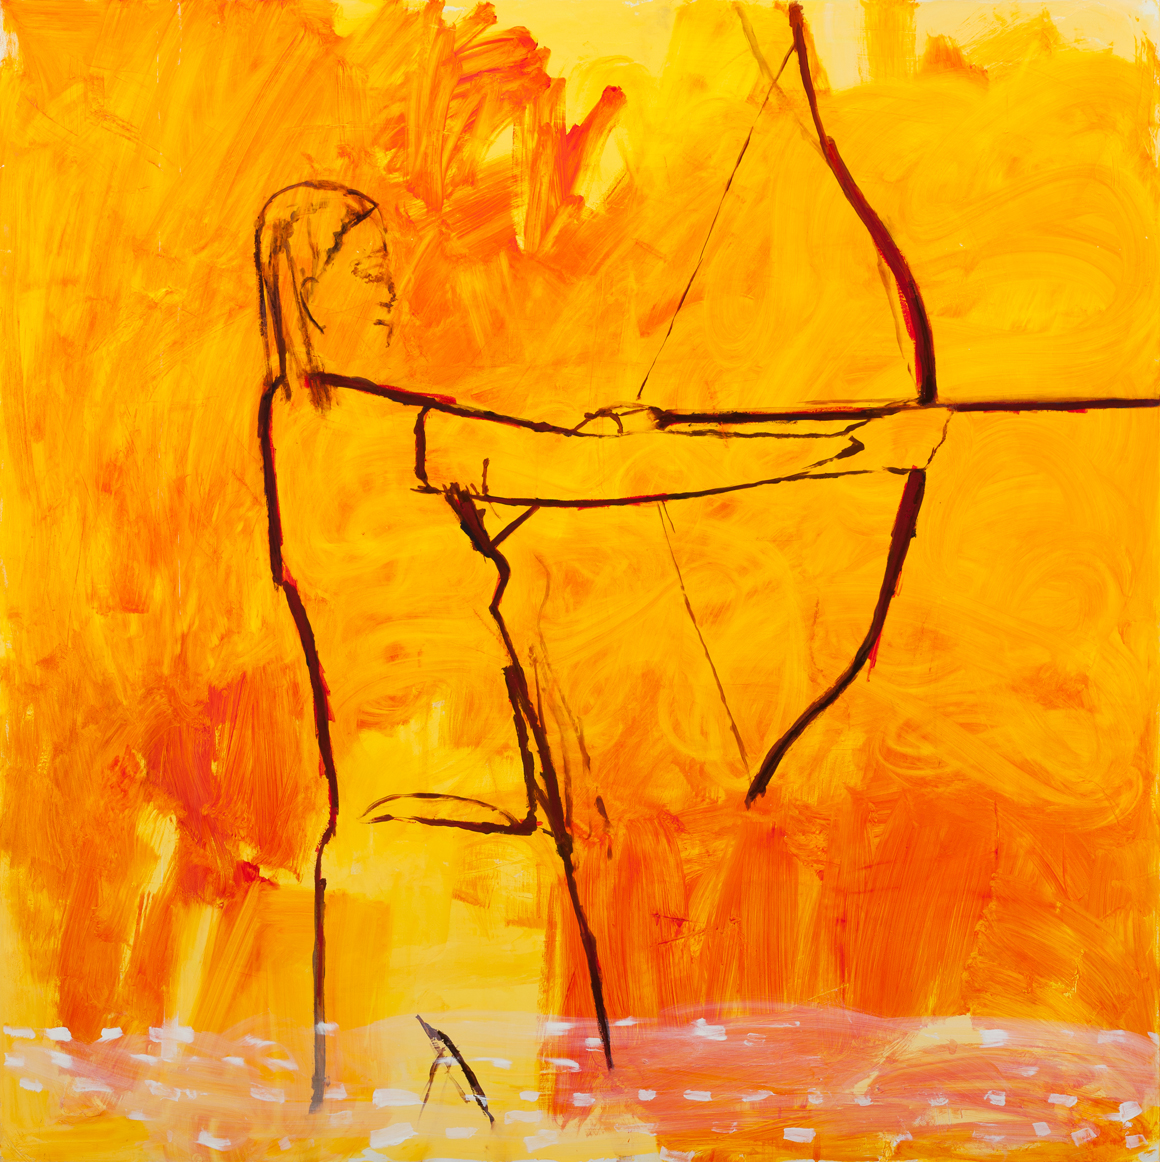 <p><em>Brave Archer 2</em>60 x 60 in  (152.4 x 152.4 cm)<br>2017<br><a class='inquire' href='mailto:info@gildargallery.com?subject=Artwork Inquiry WSTO0077&body=I am interested in finding out more about Brave Archer 2 by William Stockman'>Inquire</a></p>